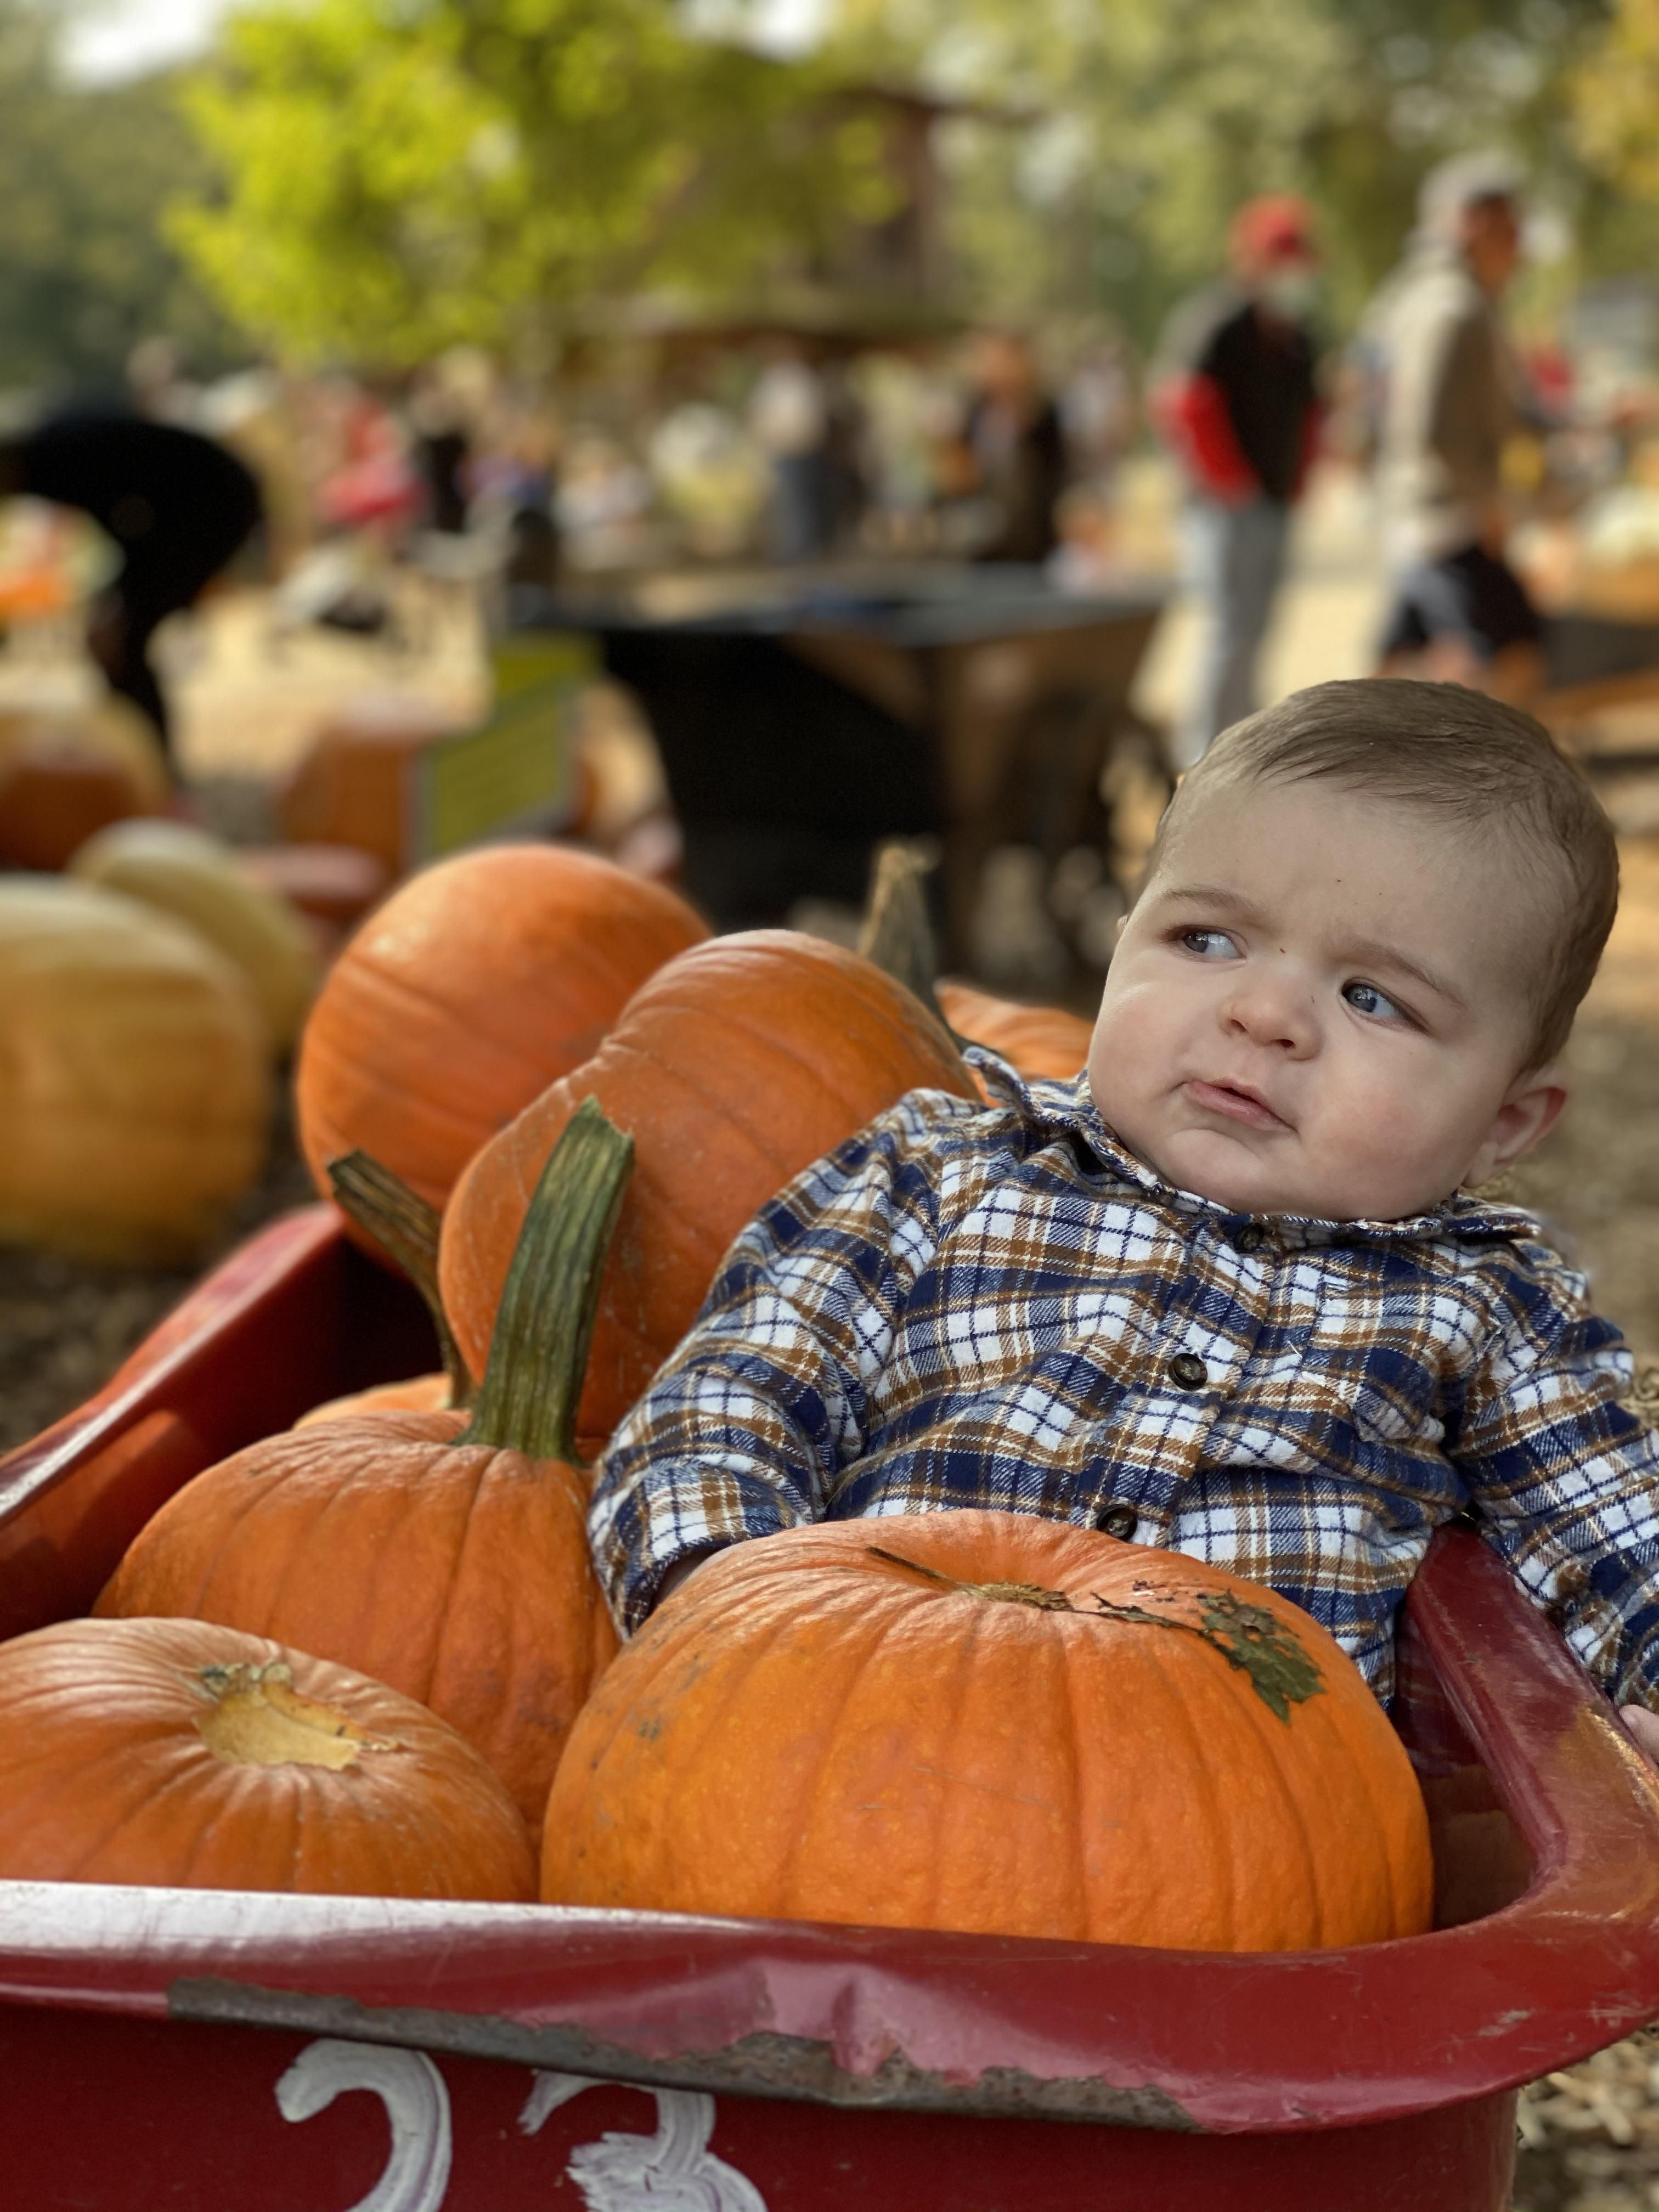 My son didn't smile once while at the pumpkin patch for the first.. he was very skeptical.